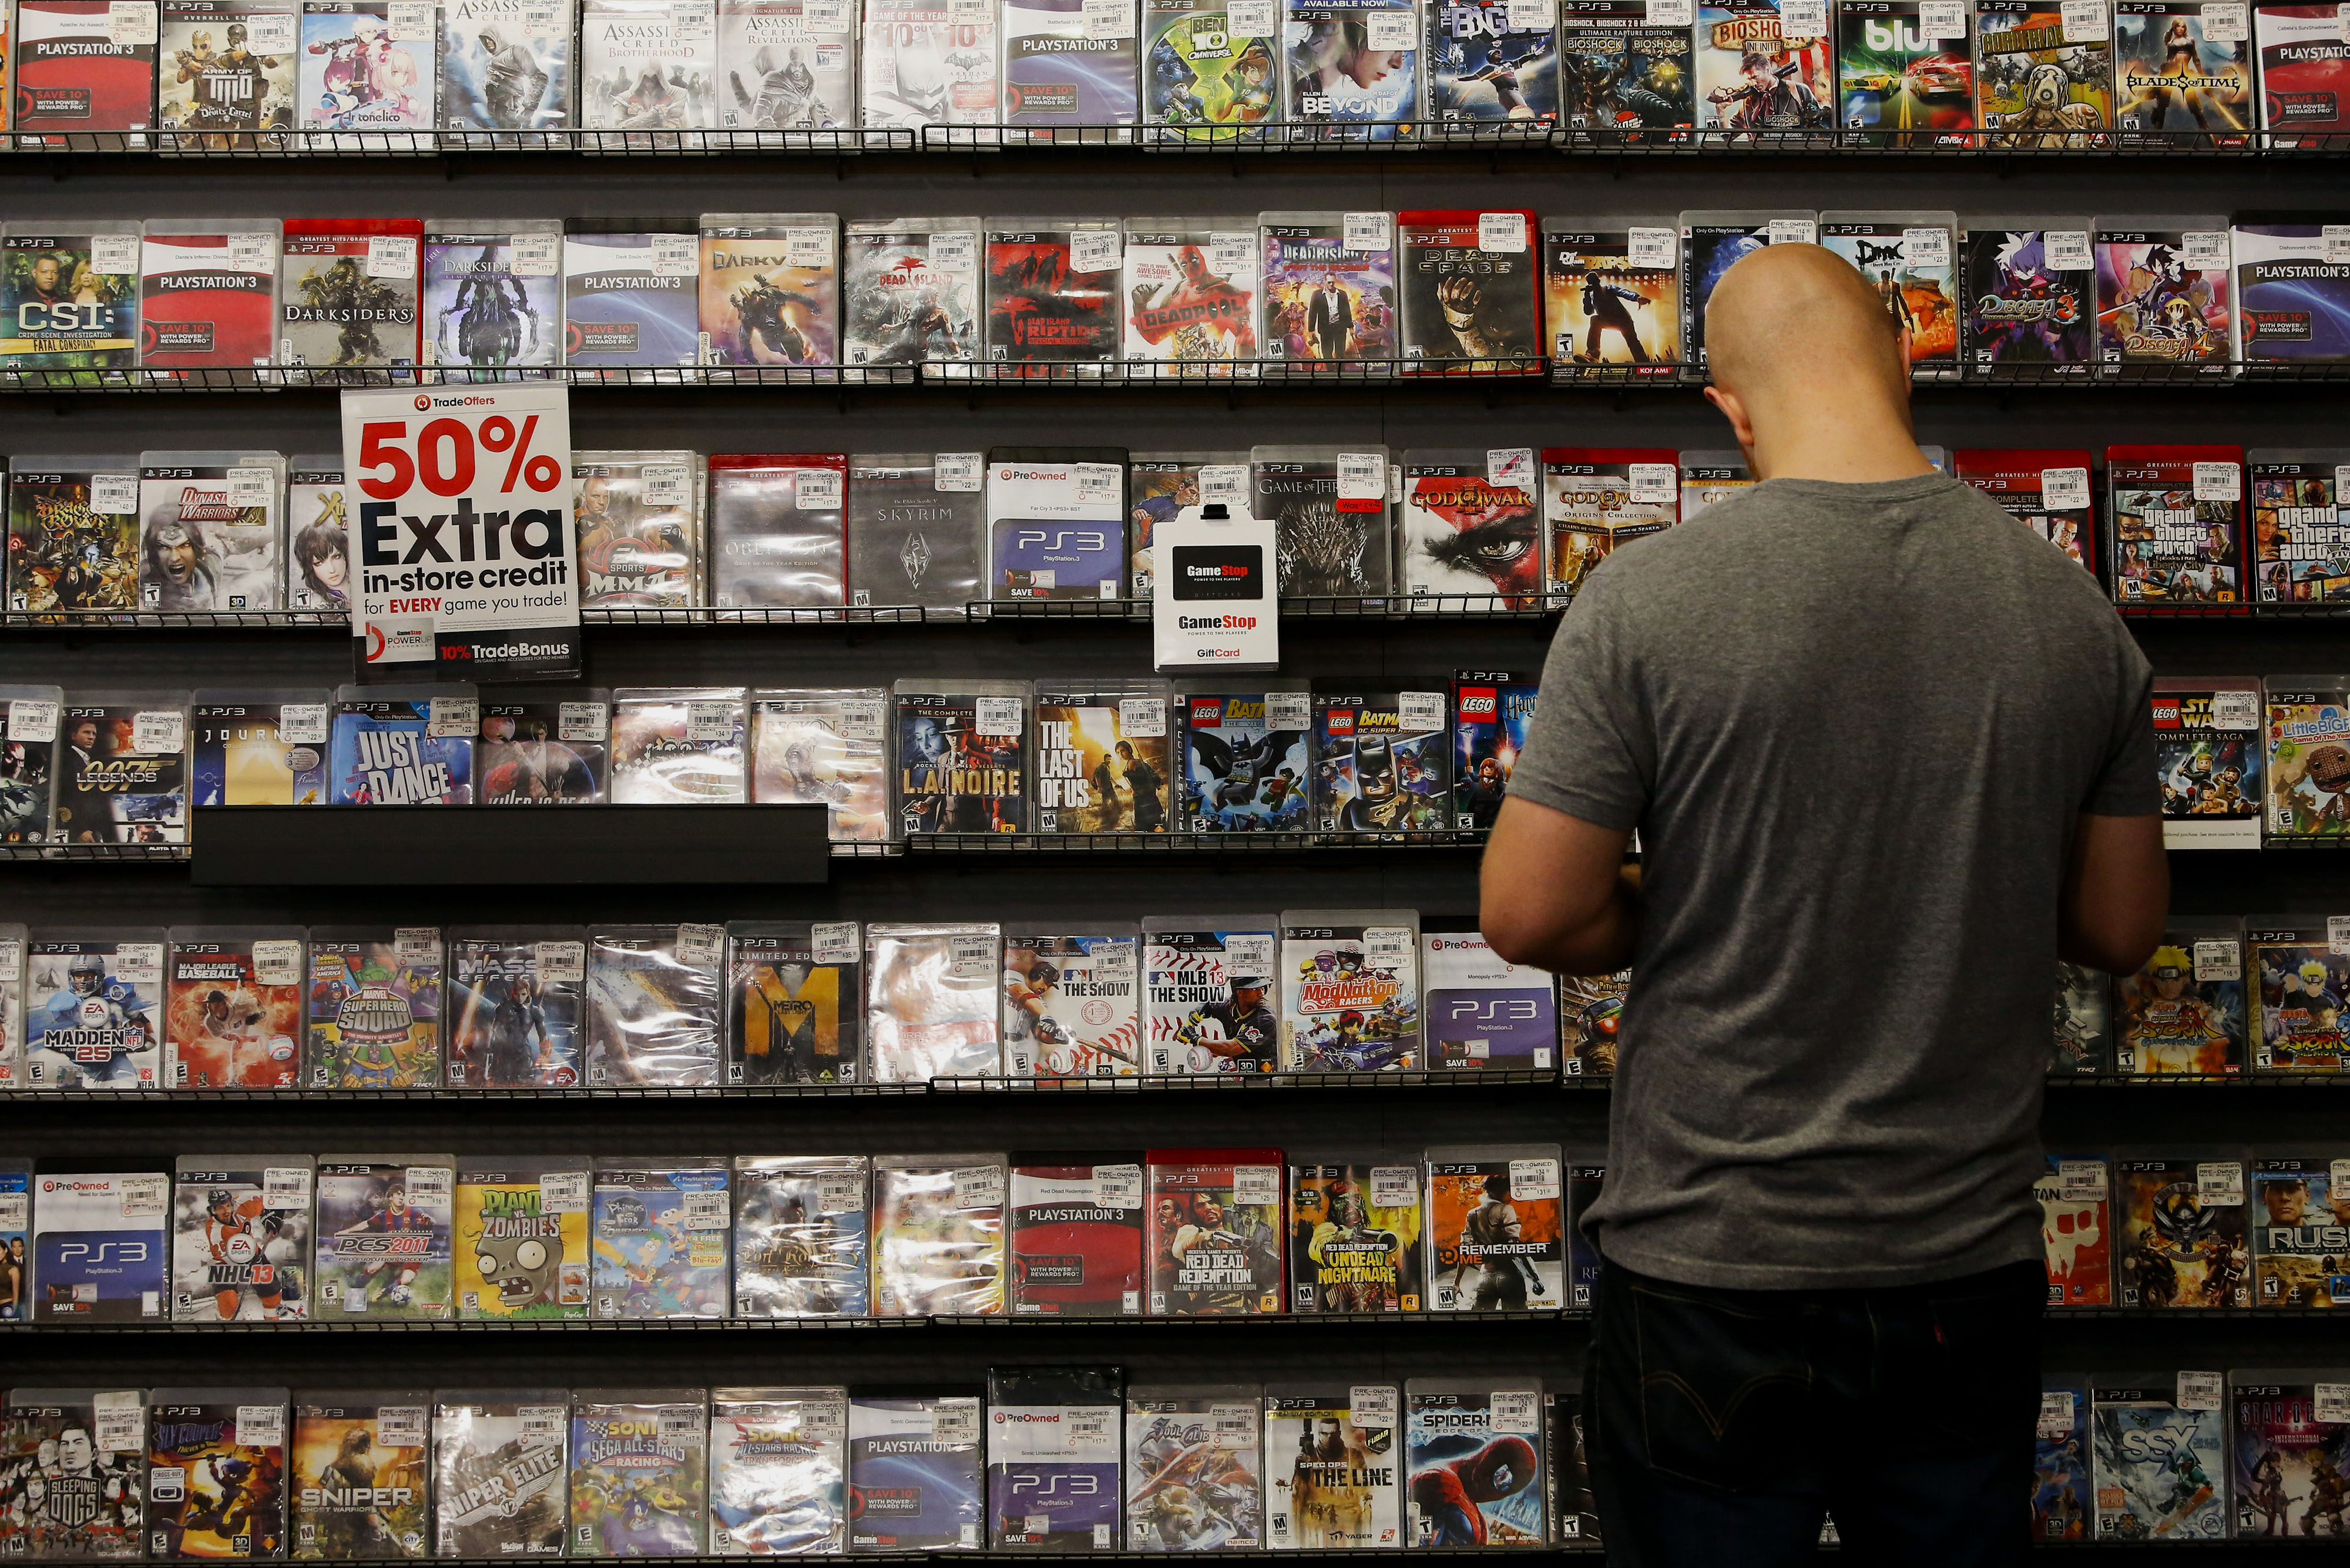 A customer browses a wall of used video games for sale from Electronic Arts and other video game publishers at a GameStop store in West Hollywood, Calif., Oct. 28, 2013.